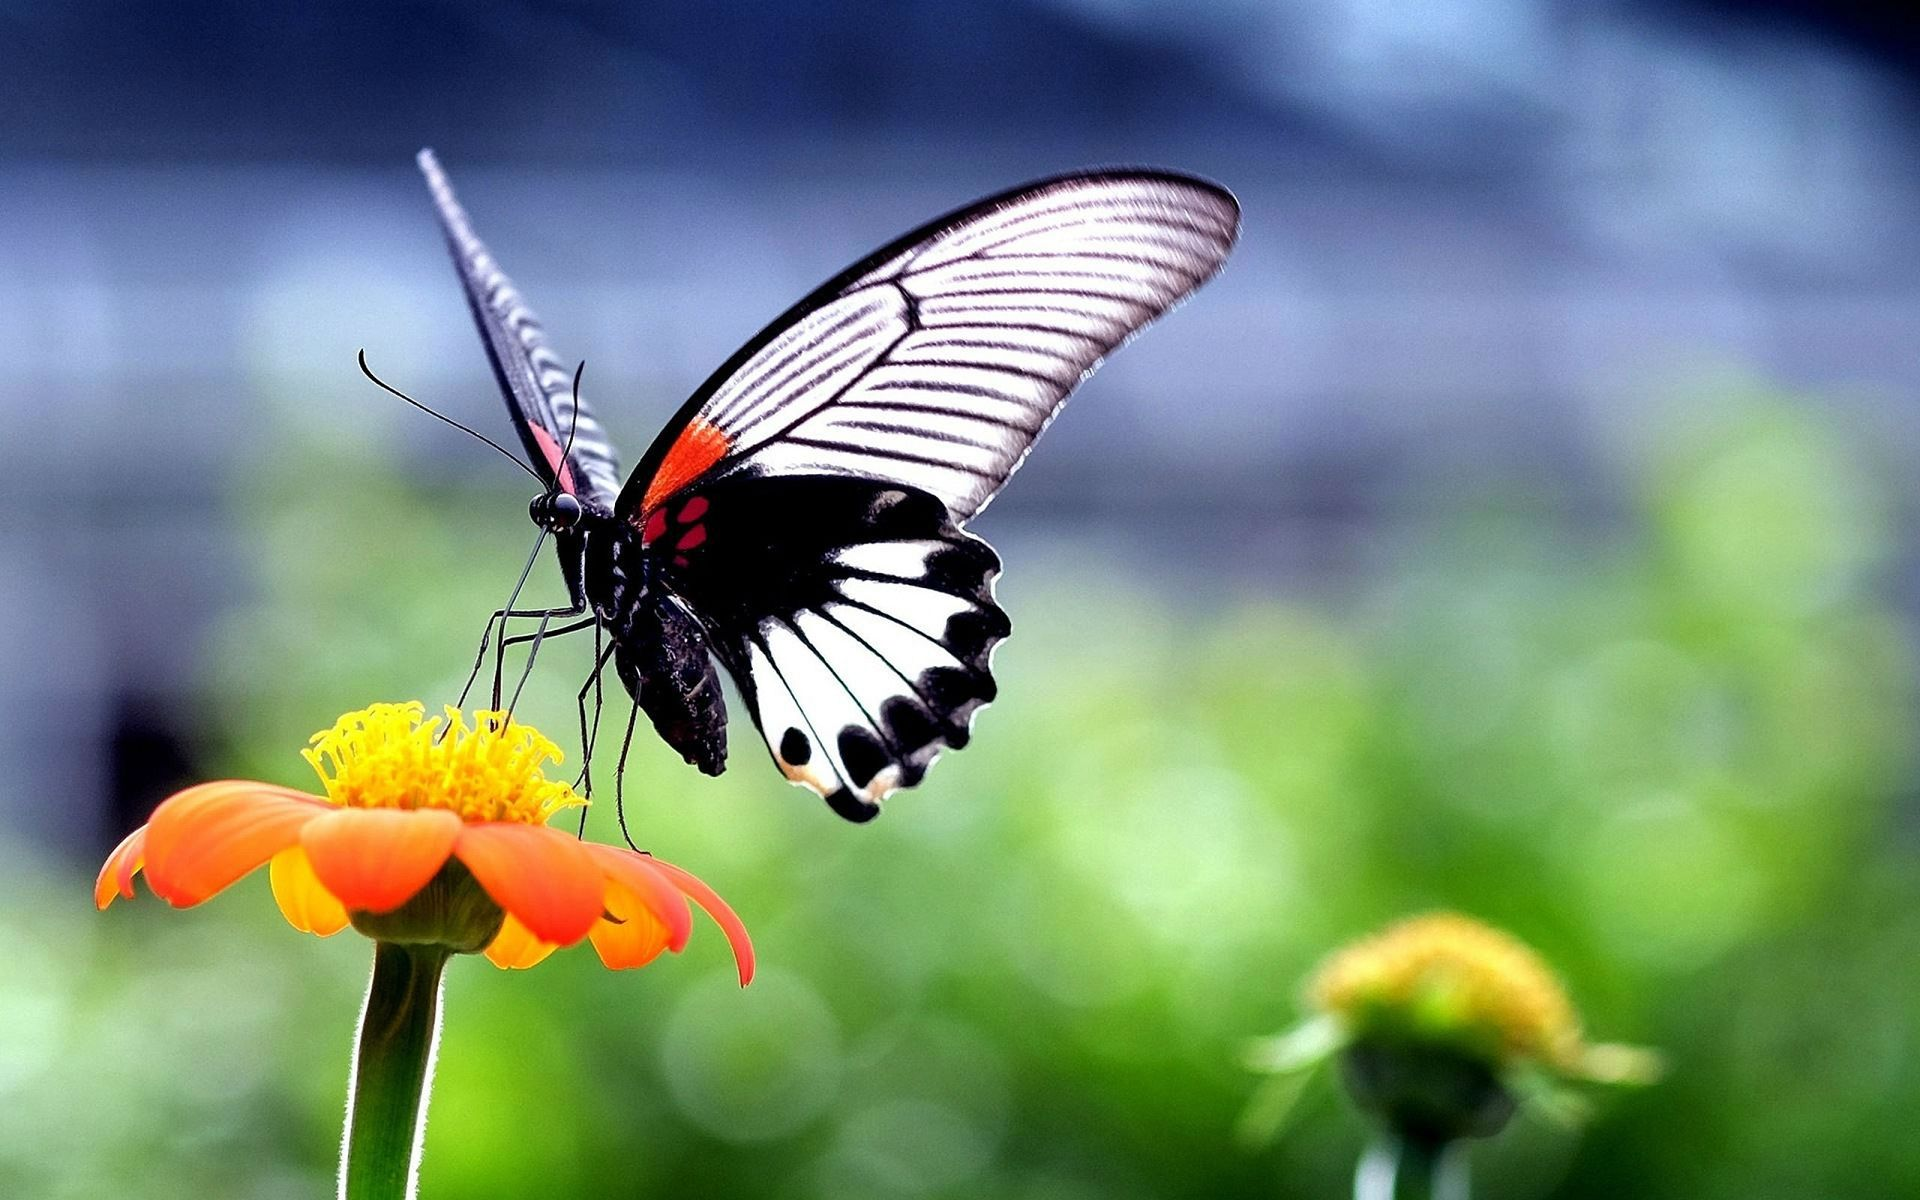 BUTTERFLY WALLPAPER Cute butterfly on sunflower marvelous HD 1920x1200